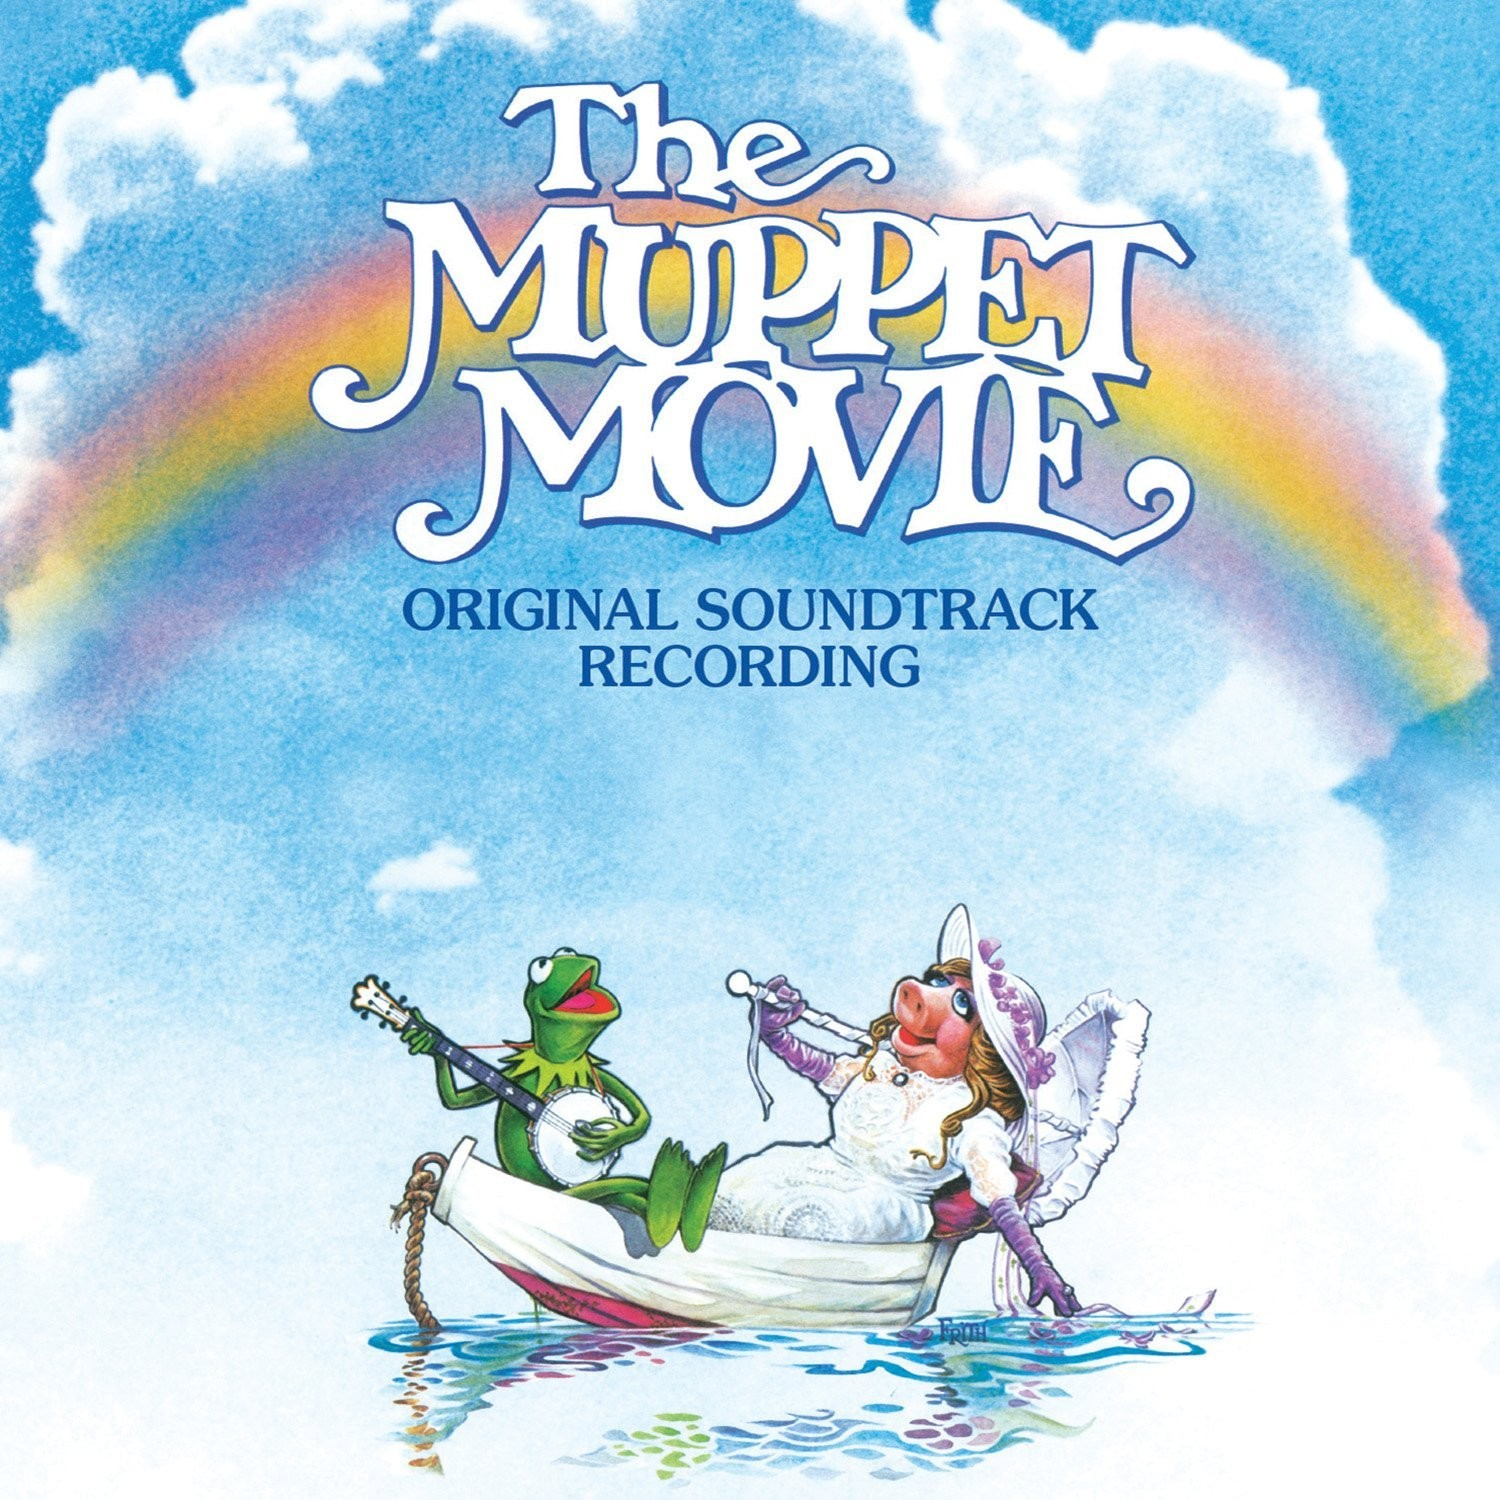 Soundtrack - The Muppet Movie Original Soundtrack Recording